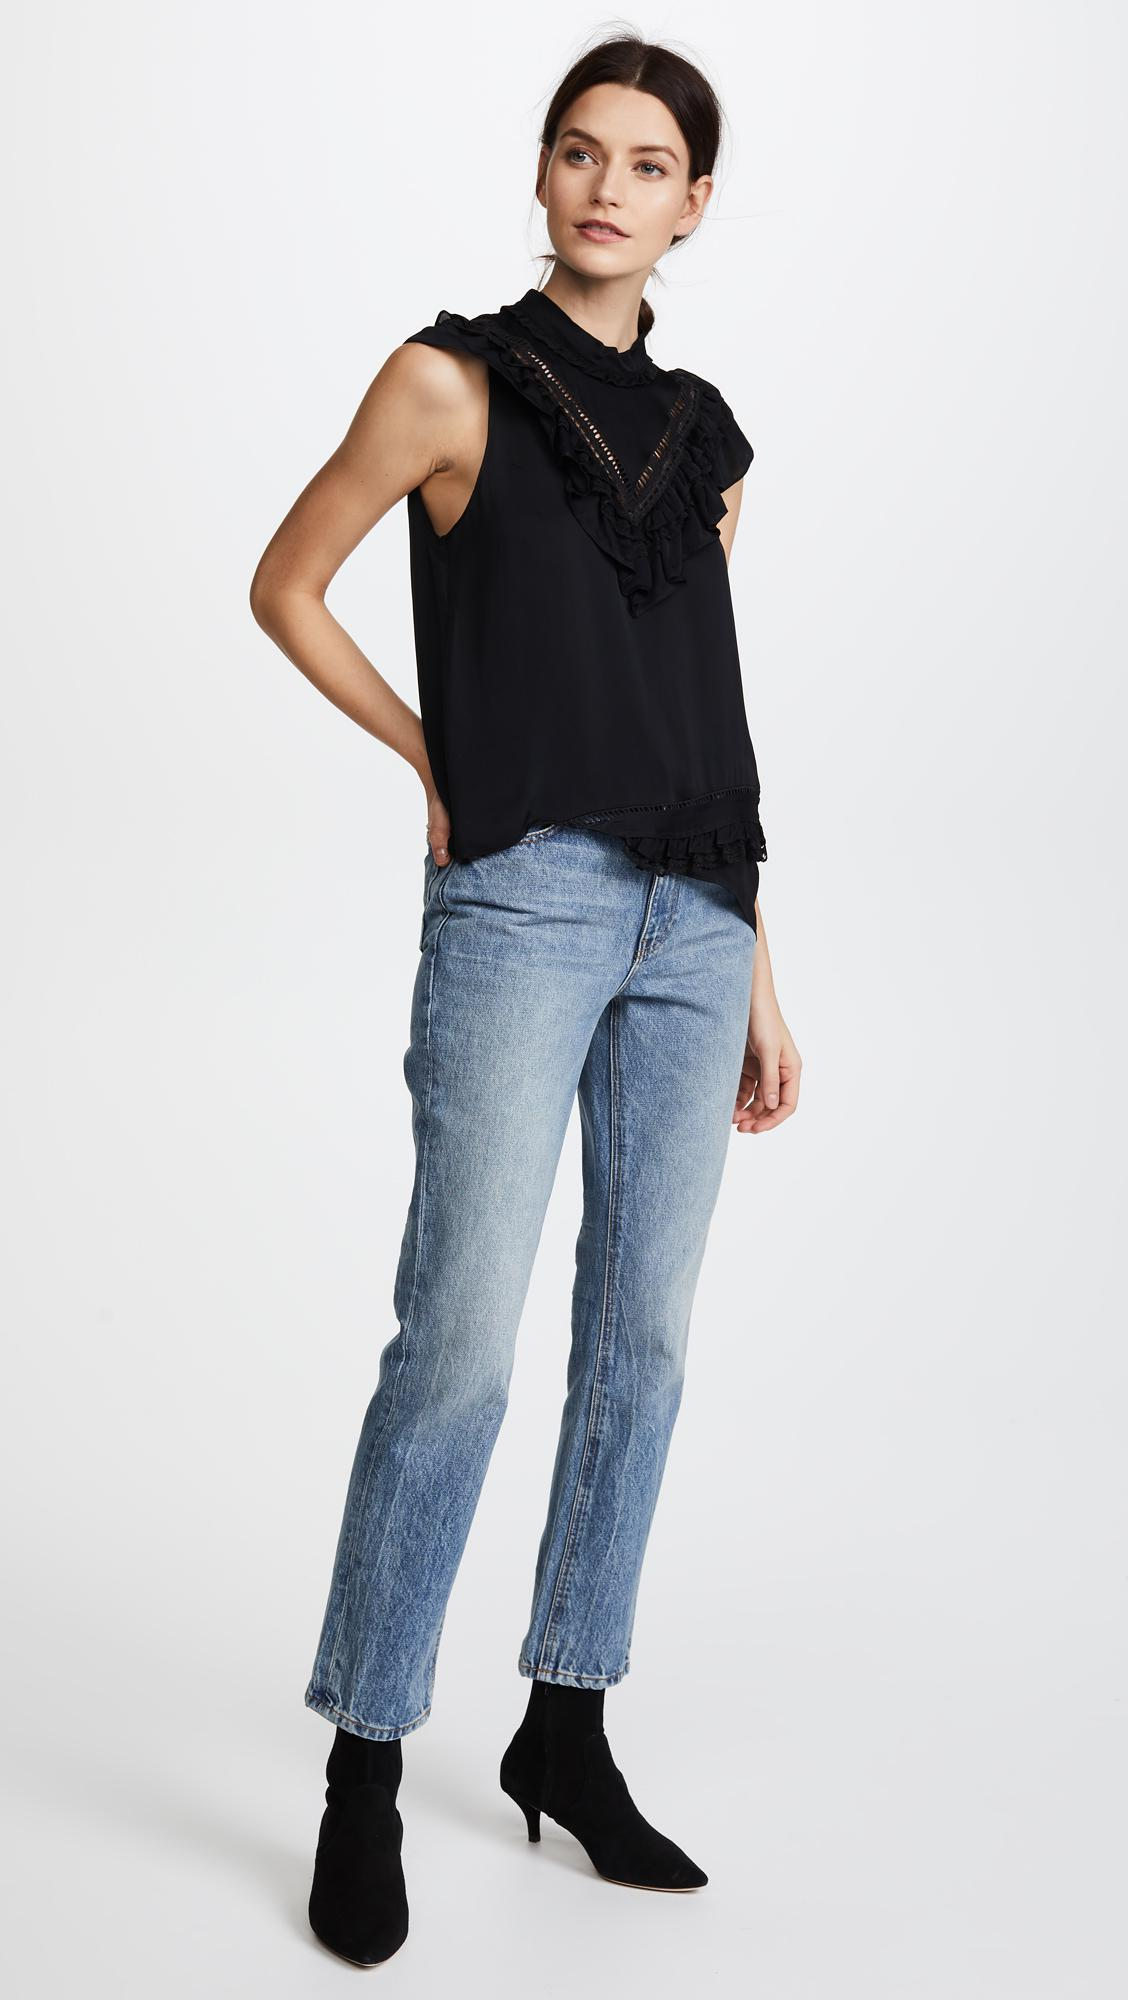 Preen By Thornton Bregazzi Synthetic Preen Line Bree Top in Black